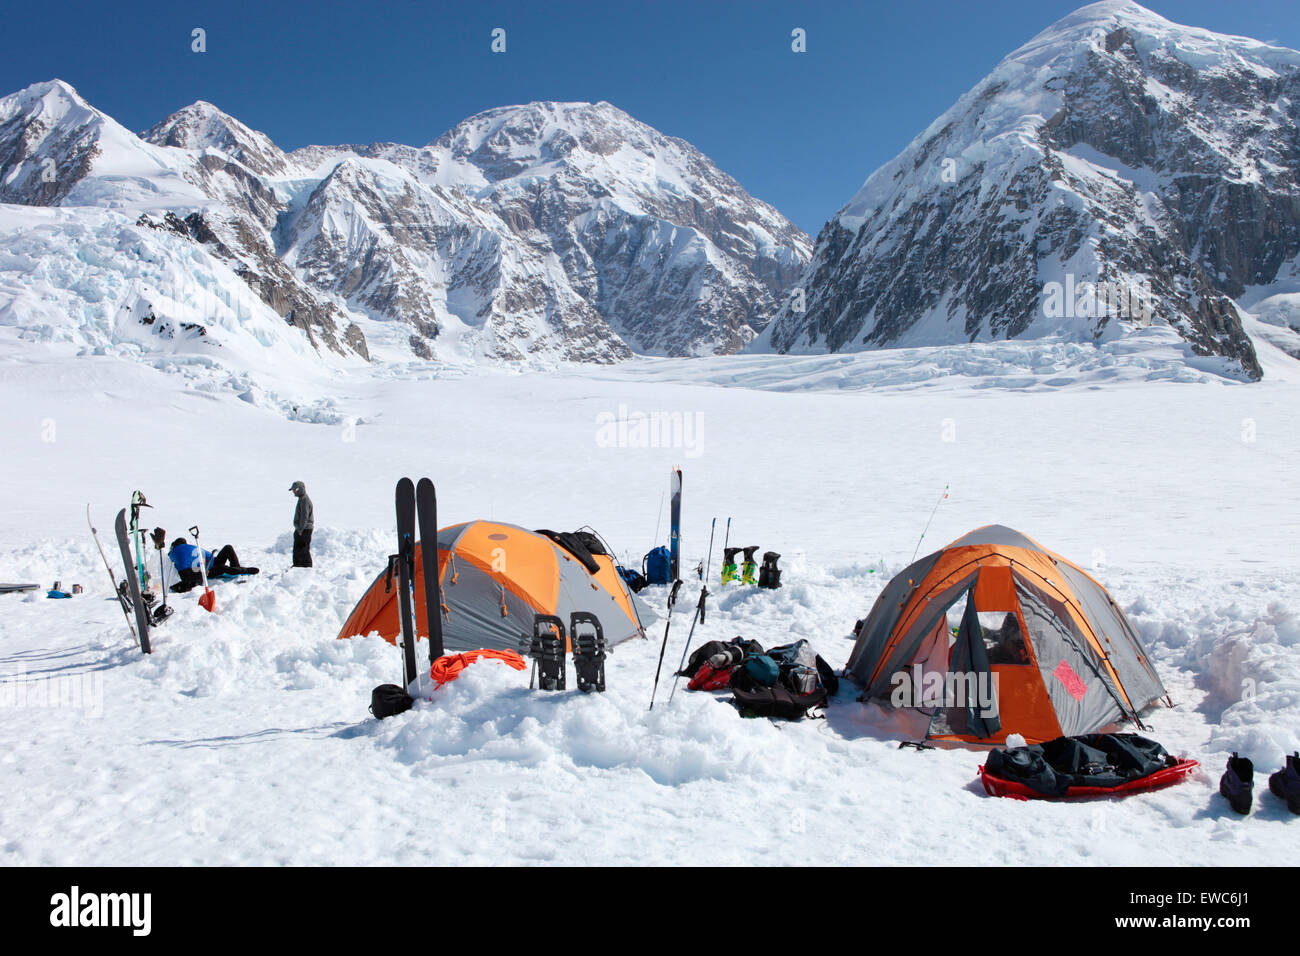 A team of mountaineers is resting in their c& with tents on the lower Kahiltna glacier on their way to Mount McKinley in & A team of mountaineers is resting in their camp with tents on the ...